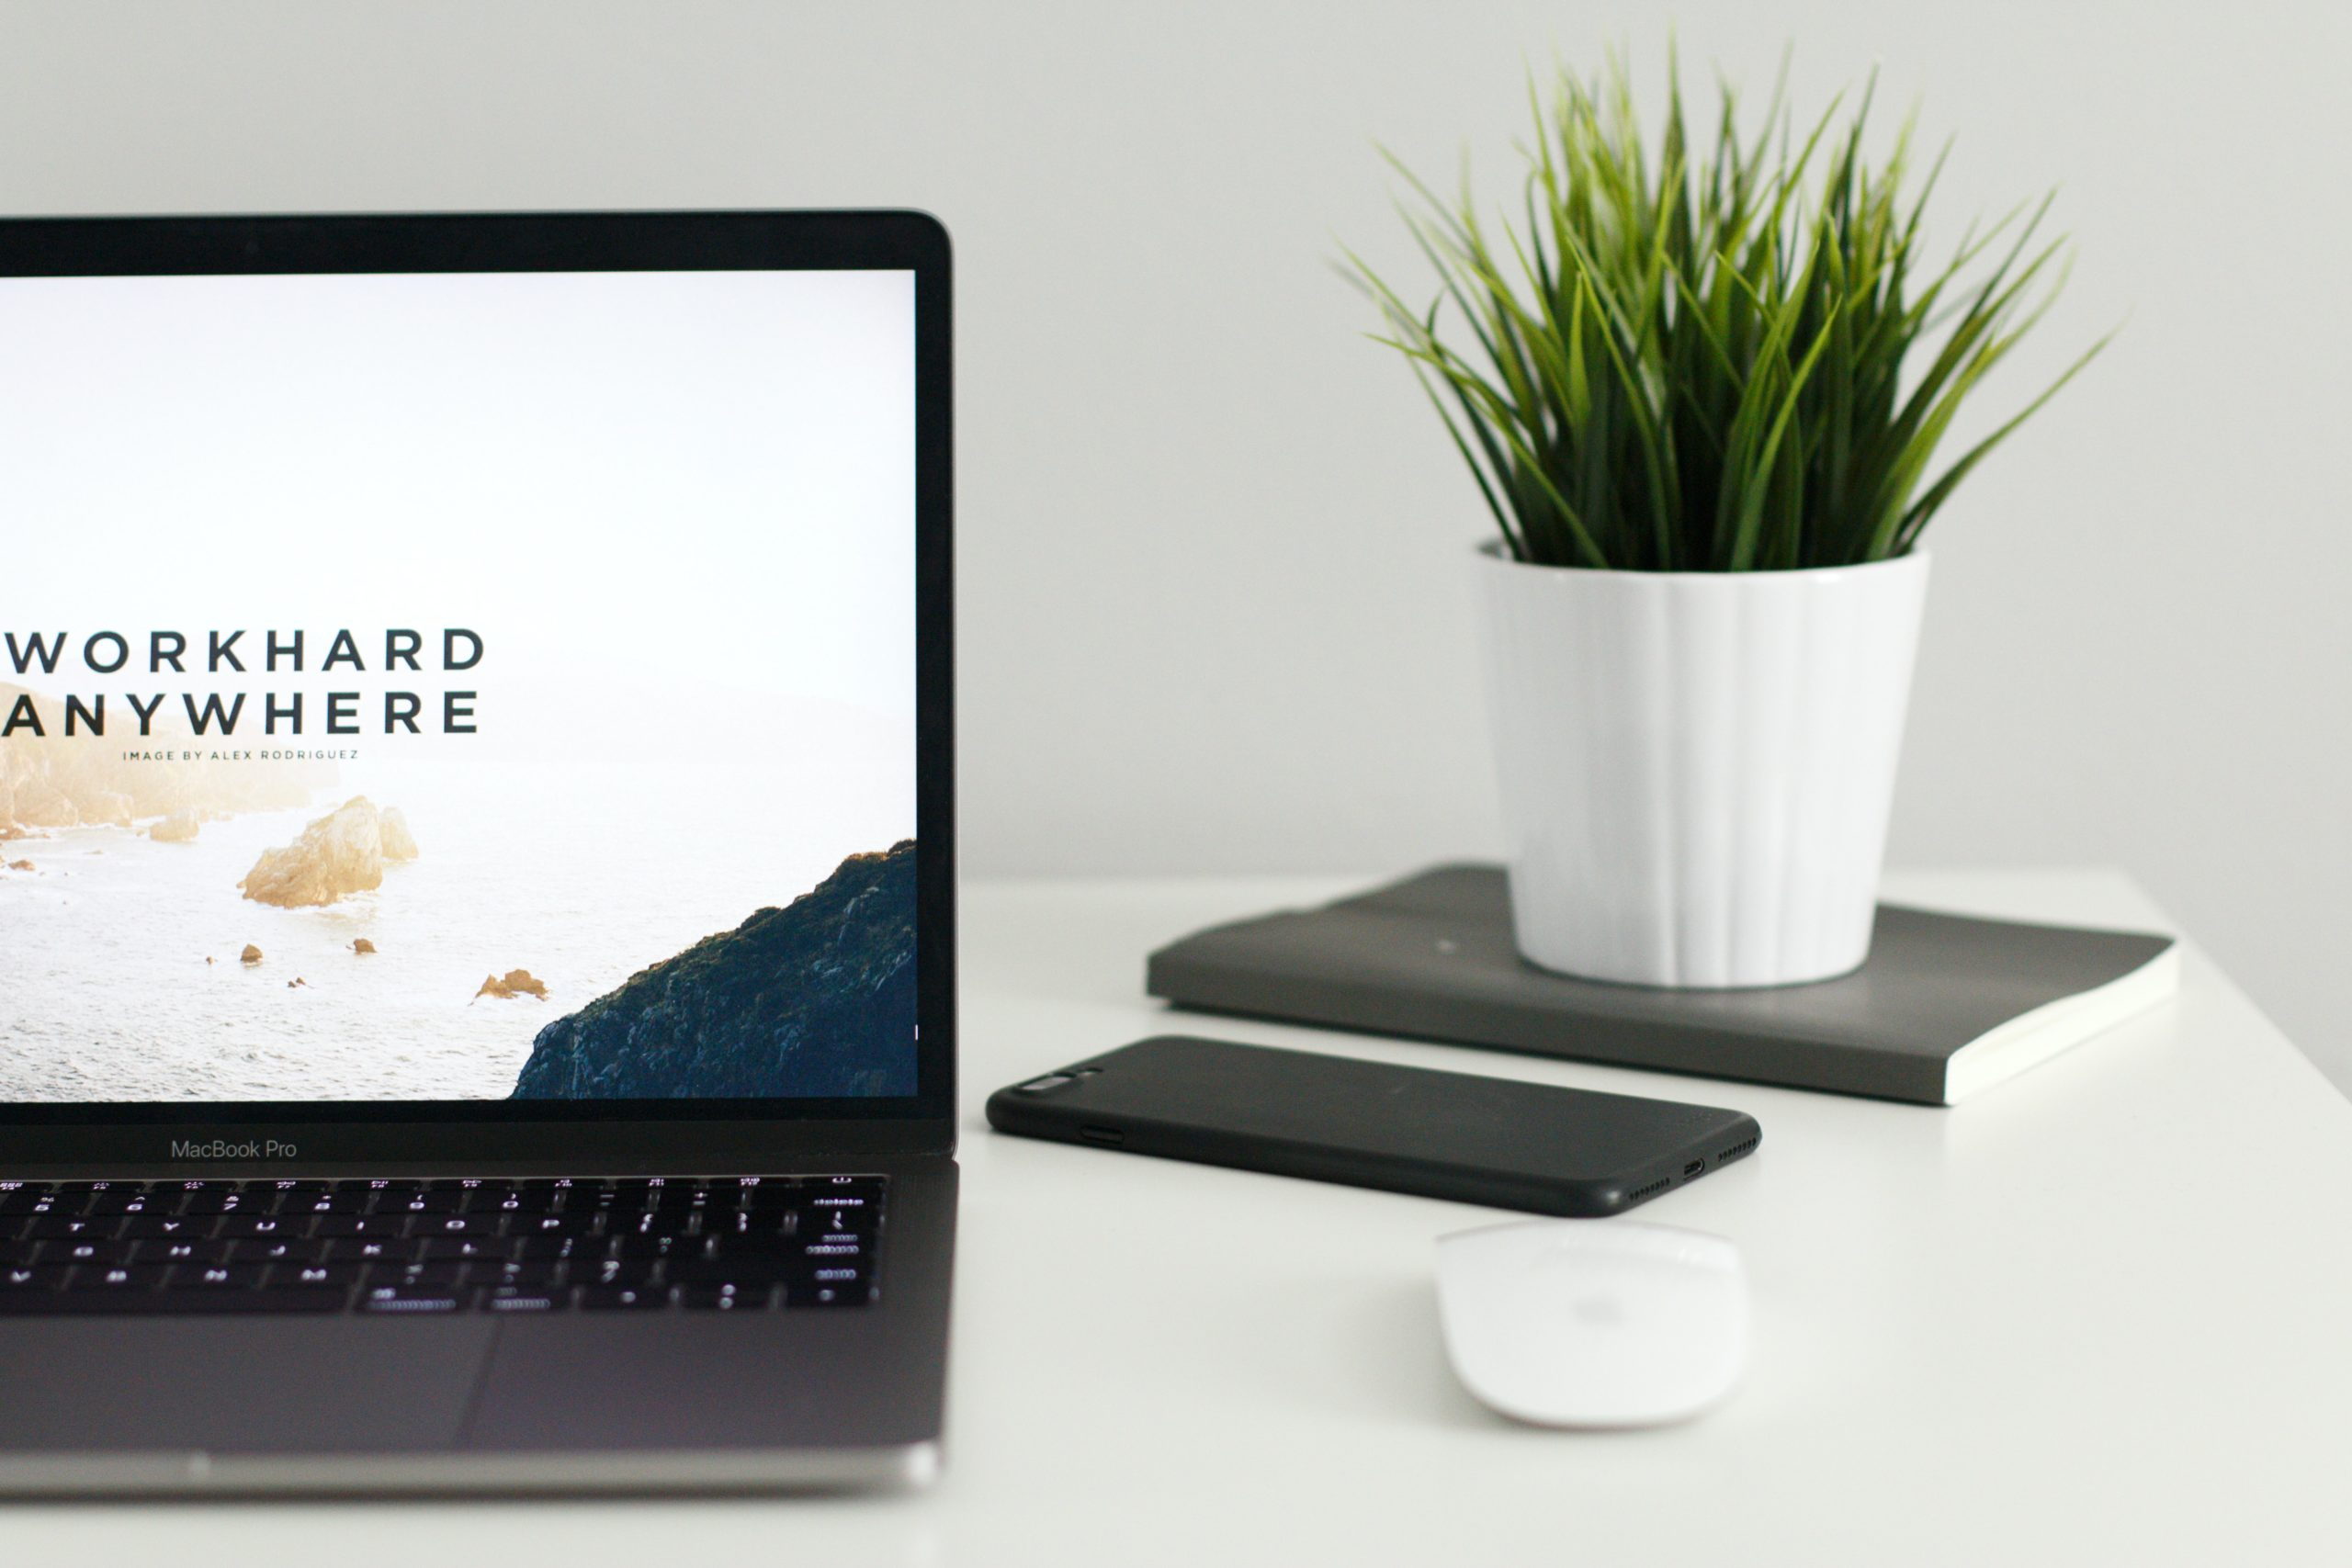 Remote Hiring Guide: How to Recruit, Video Interview, and Hire Remote Employees